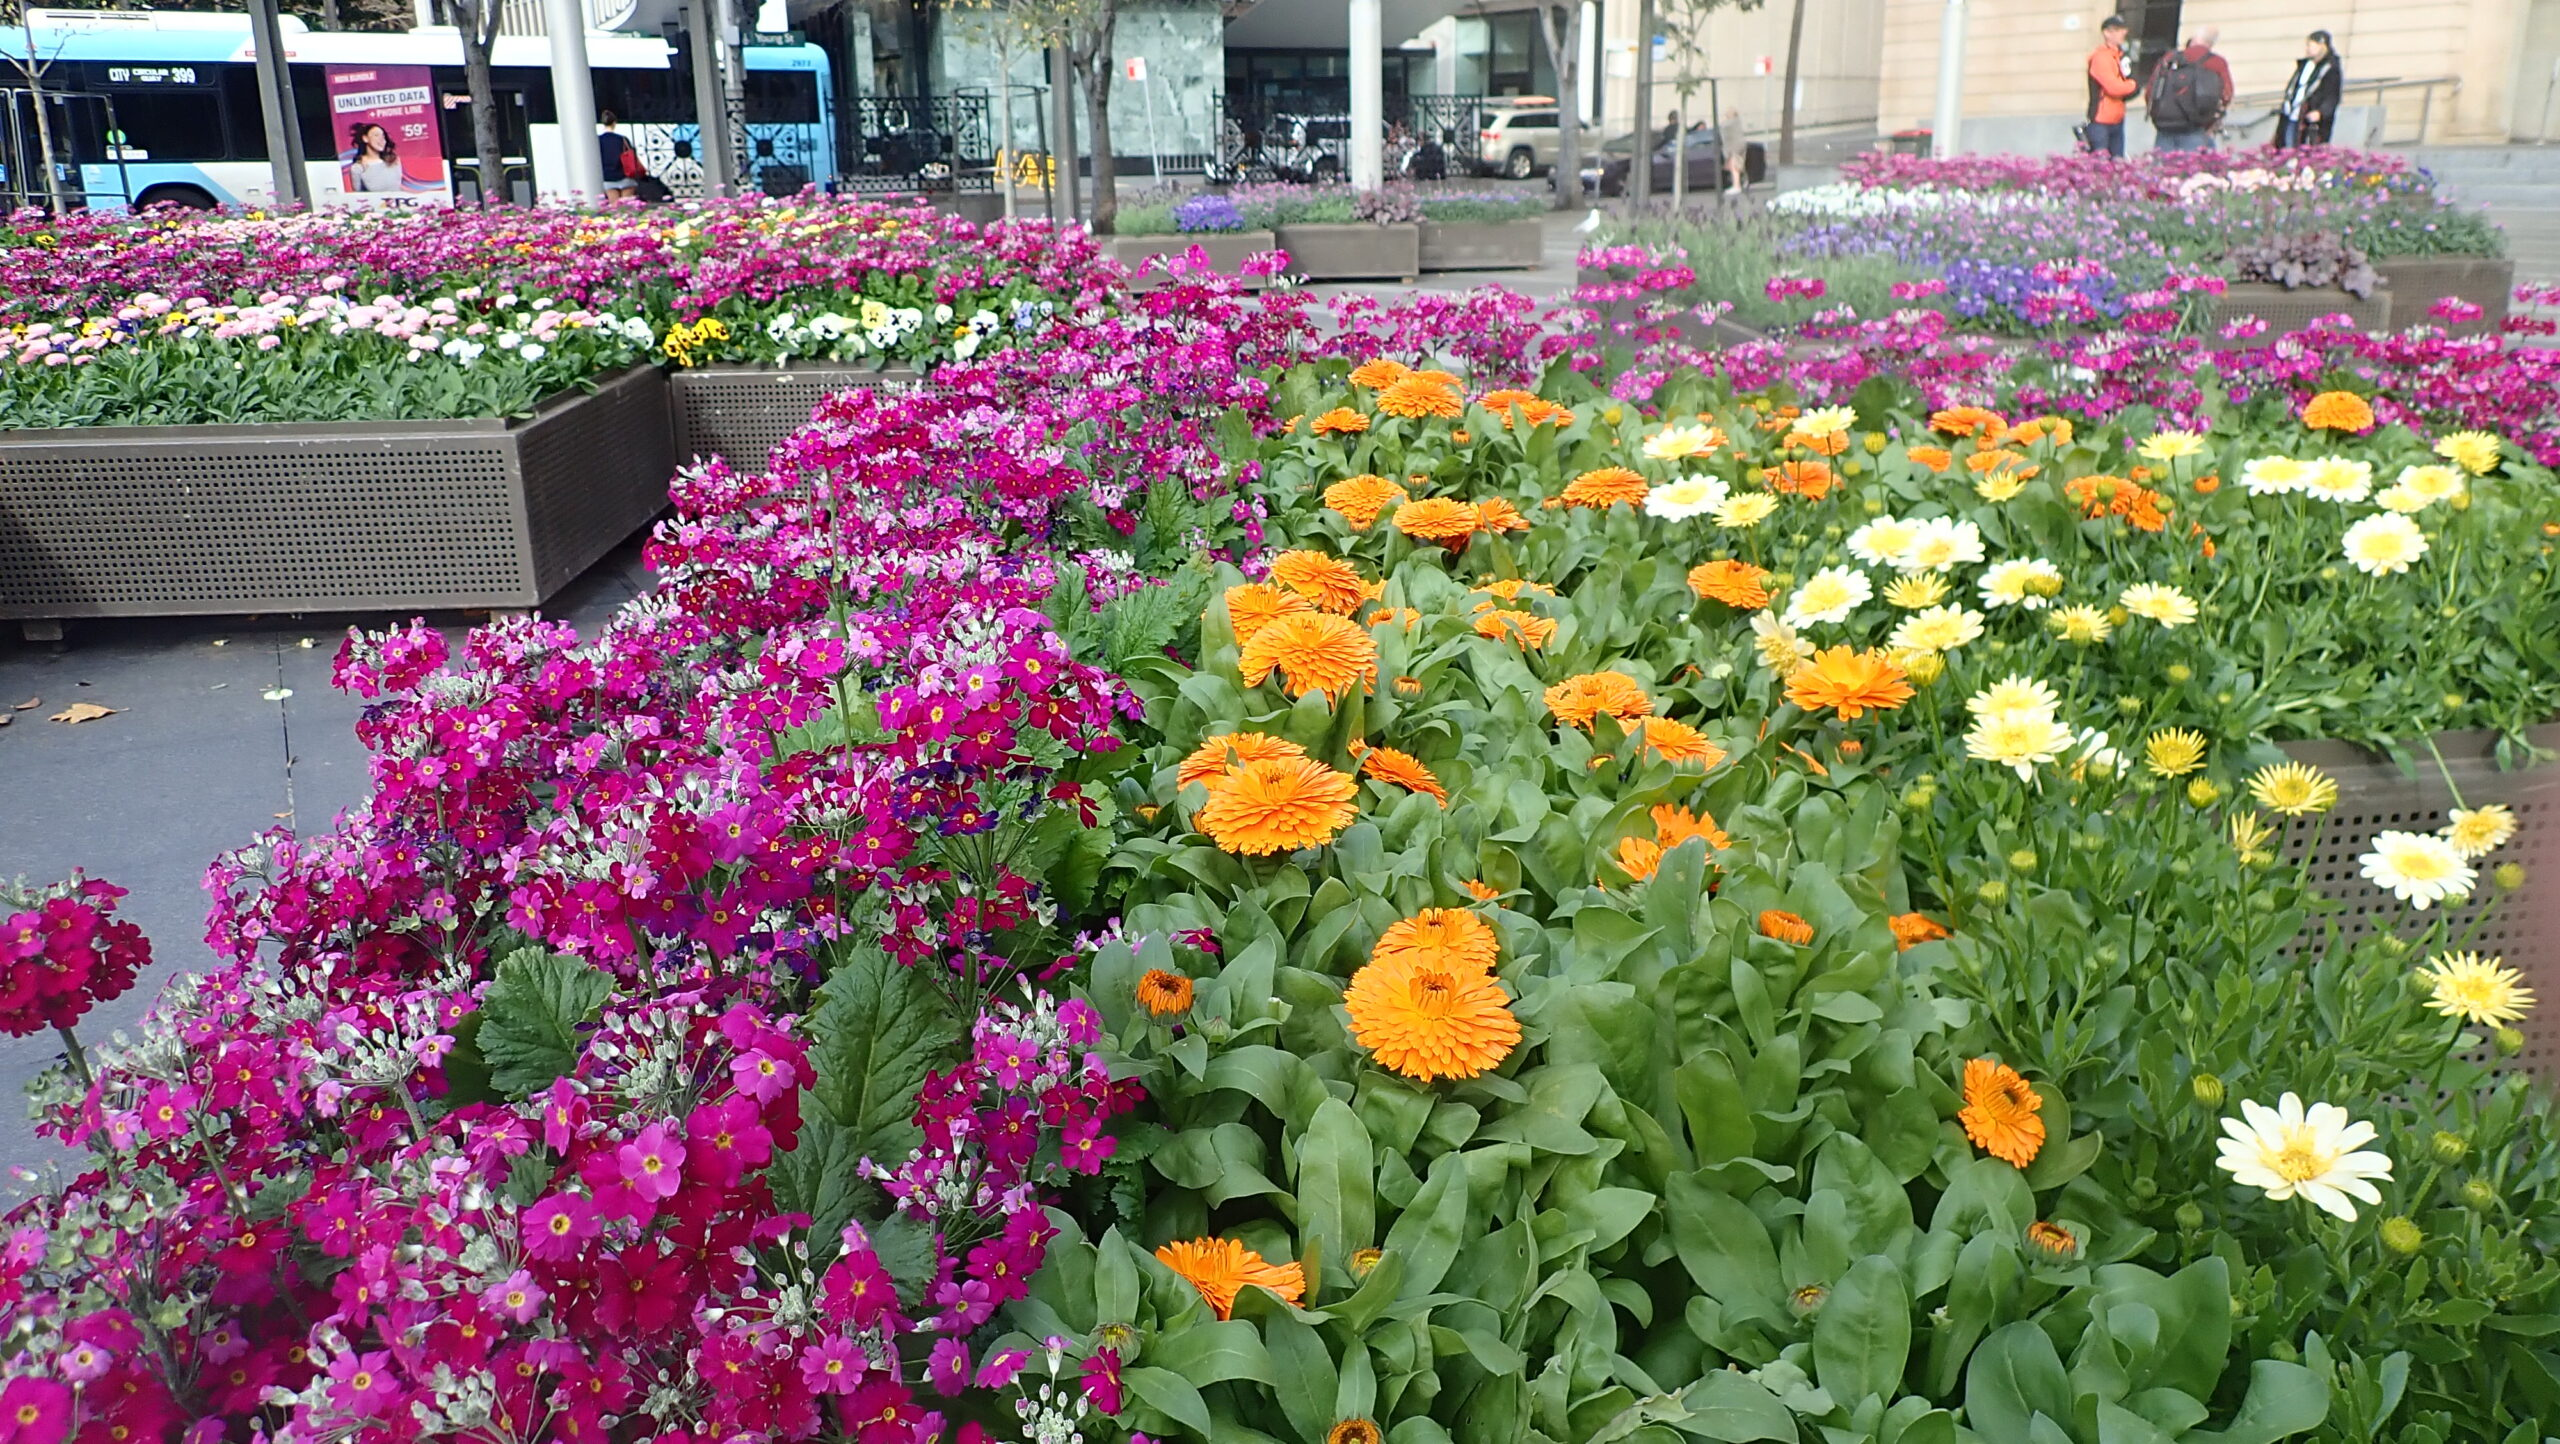 City of Sydney's 'Living Colour' streetscapes